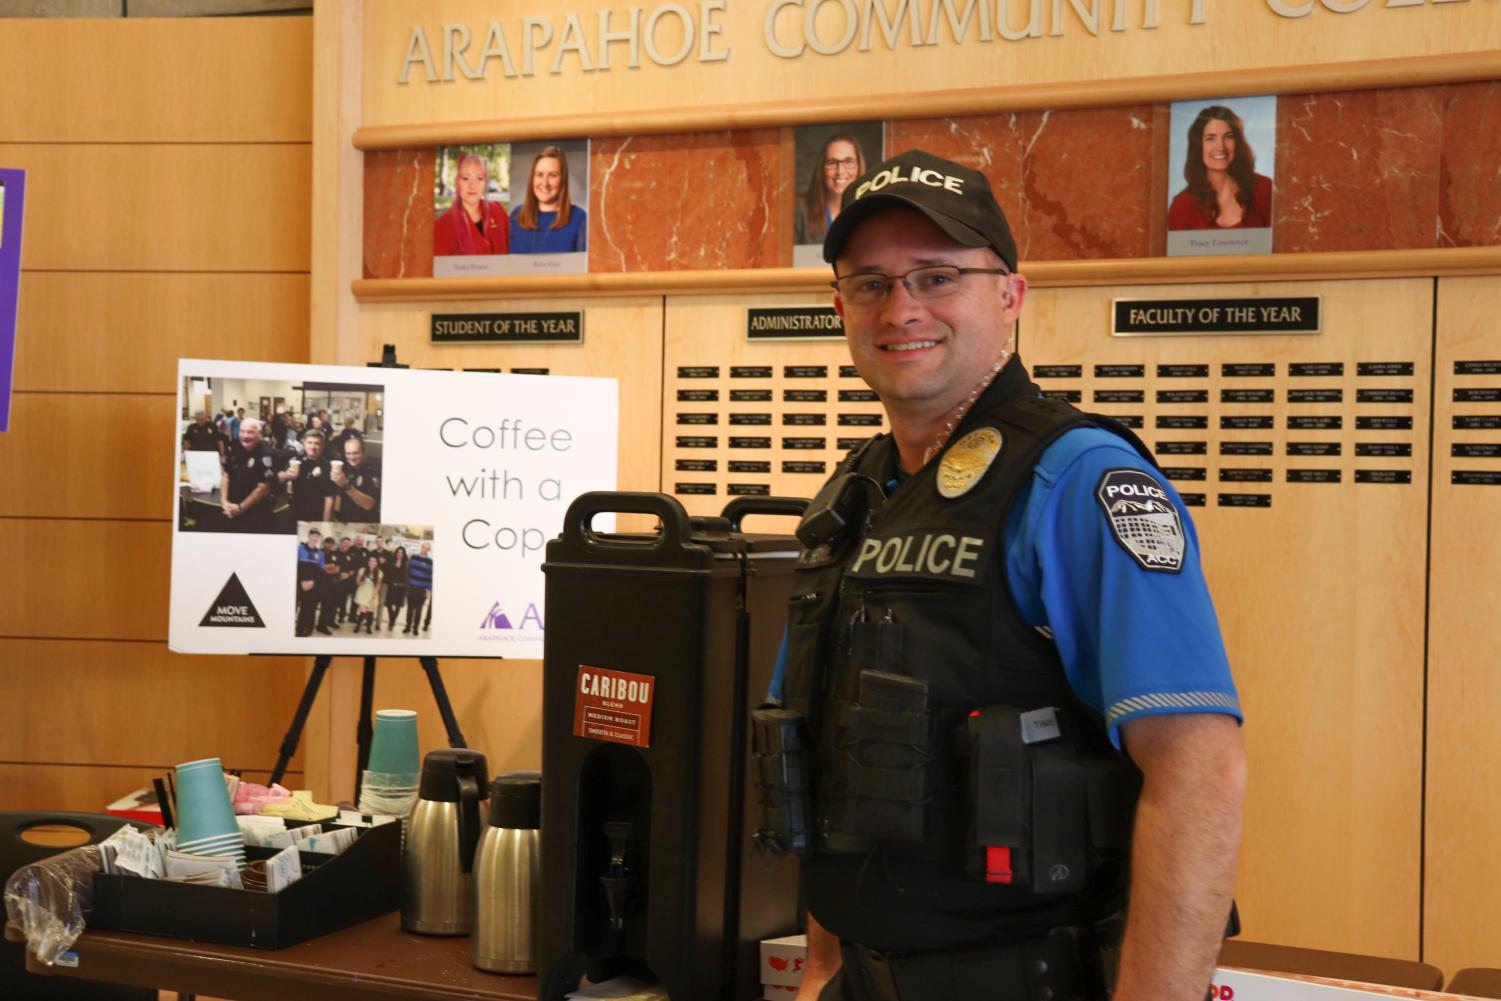 Officer K. Heylin takes a moment to pose in front of the Caribou Coffee and sign for Coffee with a Cop on Tuesday April 9th, 2019.